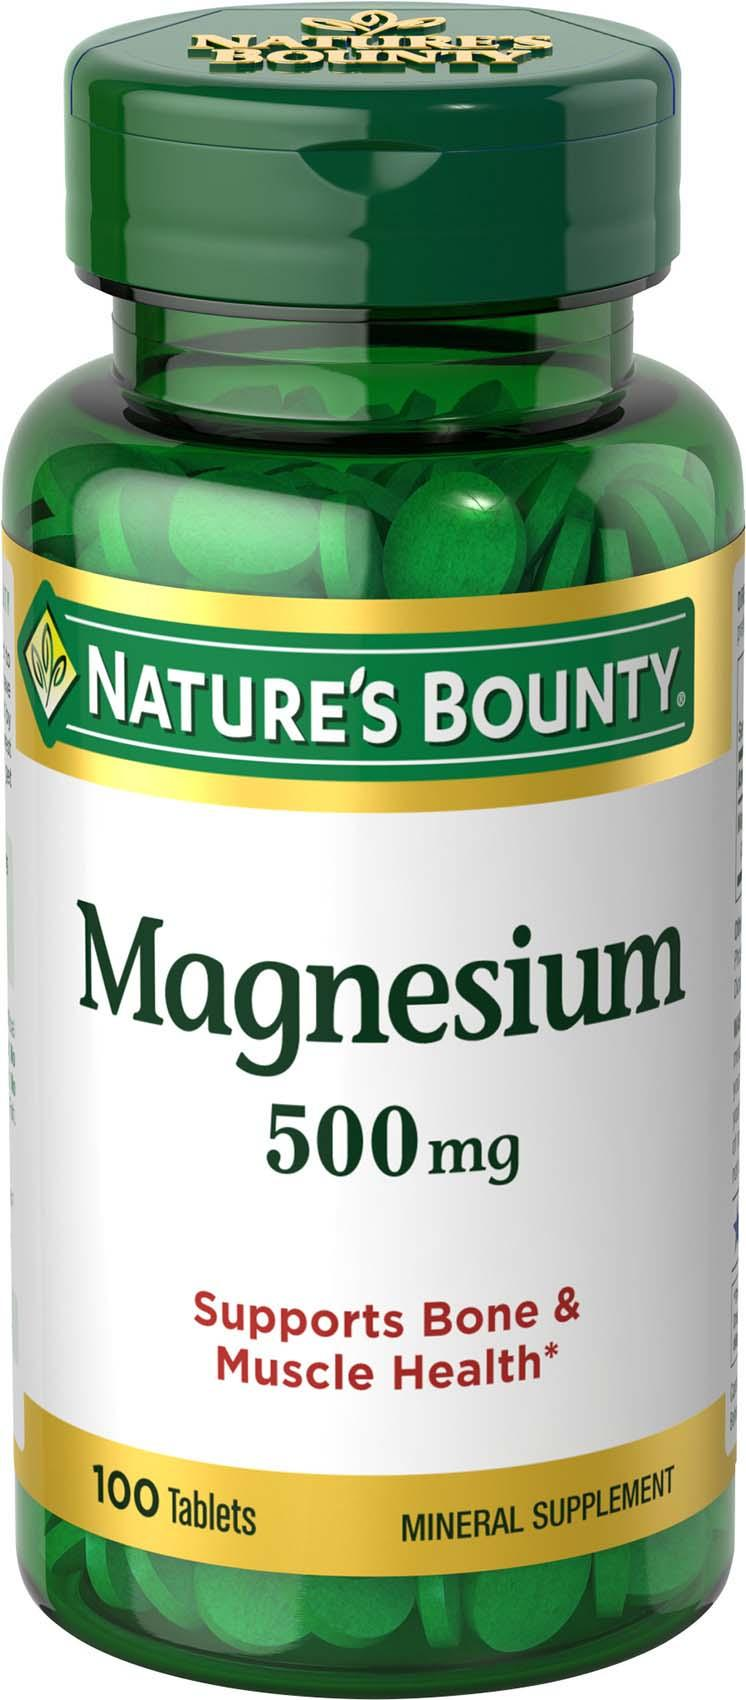 muscle bone health magnesium bounty amazon supplement supports nature mg natures mineral na coated tablets